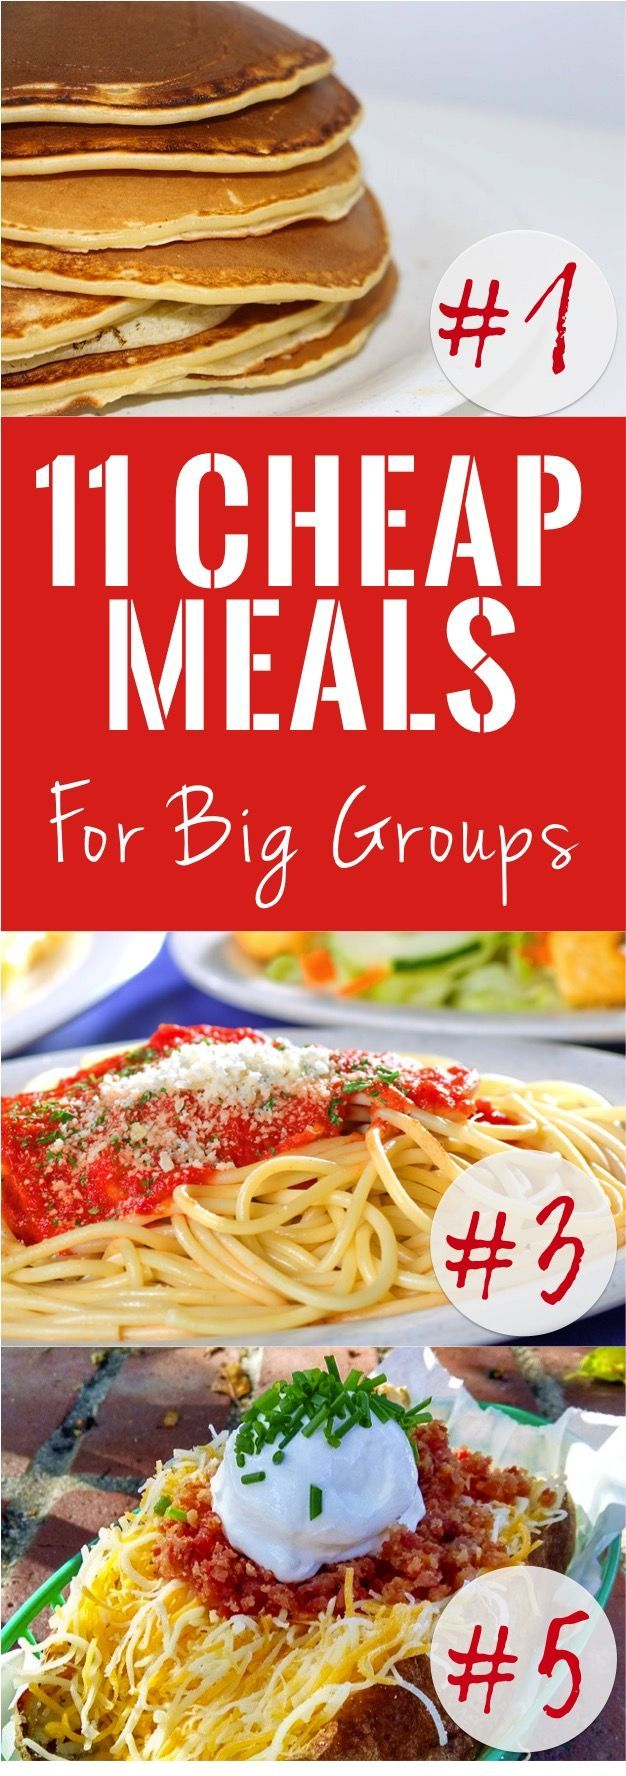 11 Cheap Meals For Big Groups